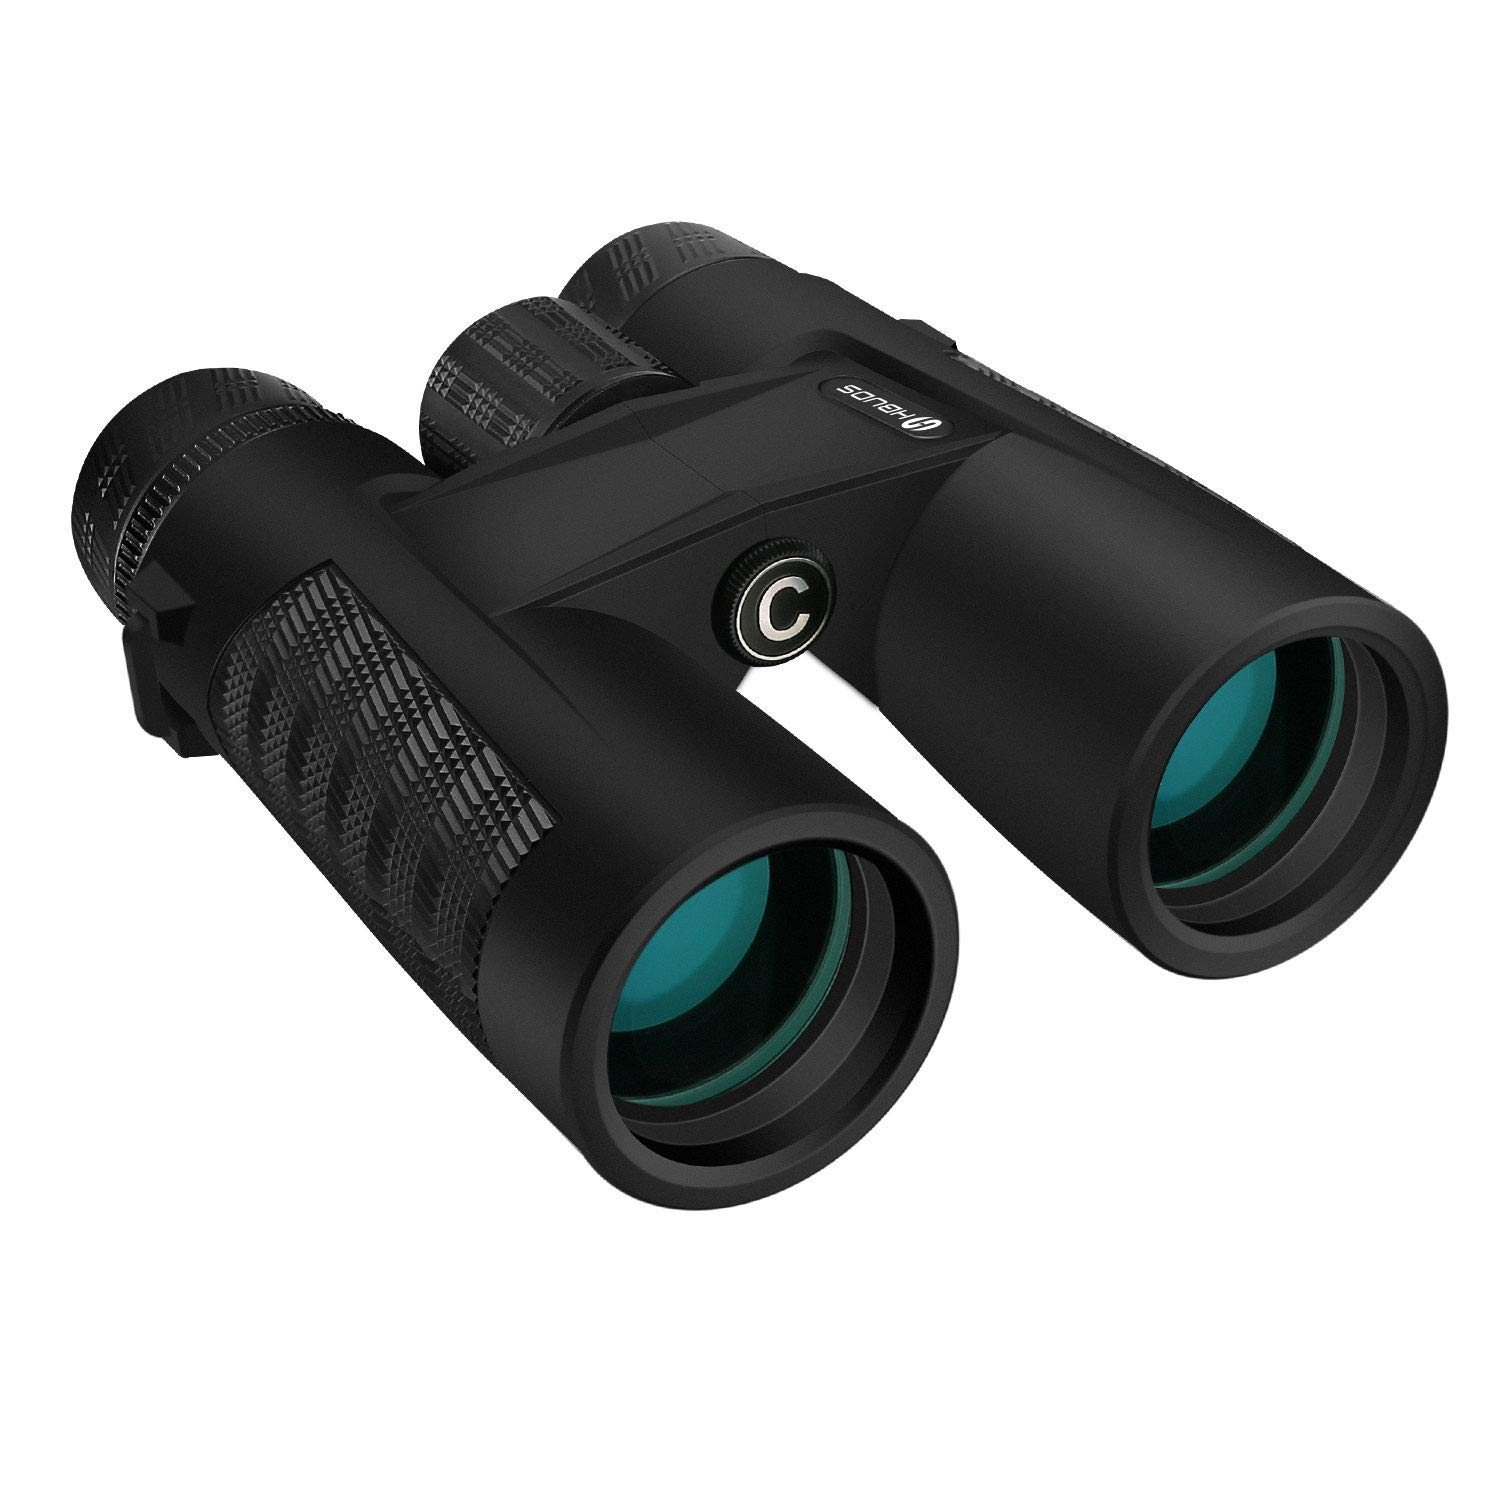 10X42 Binoculars for Adults,HD Optics BAK4 Roof Prism FMC Fully Coated Lens with Neck Strap/Carrying Binocular Large Eyepiece Watching, Hiking, Outdoor Hunting, Travelling, Sports, Also Fit for Kids